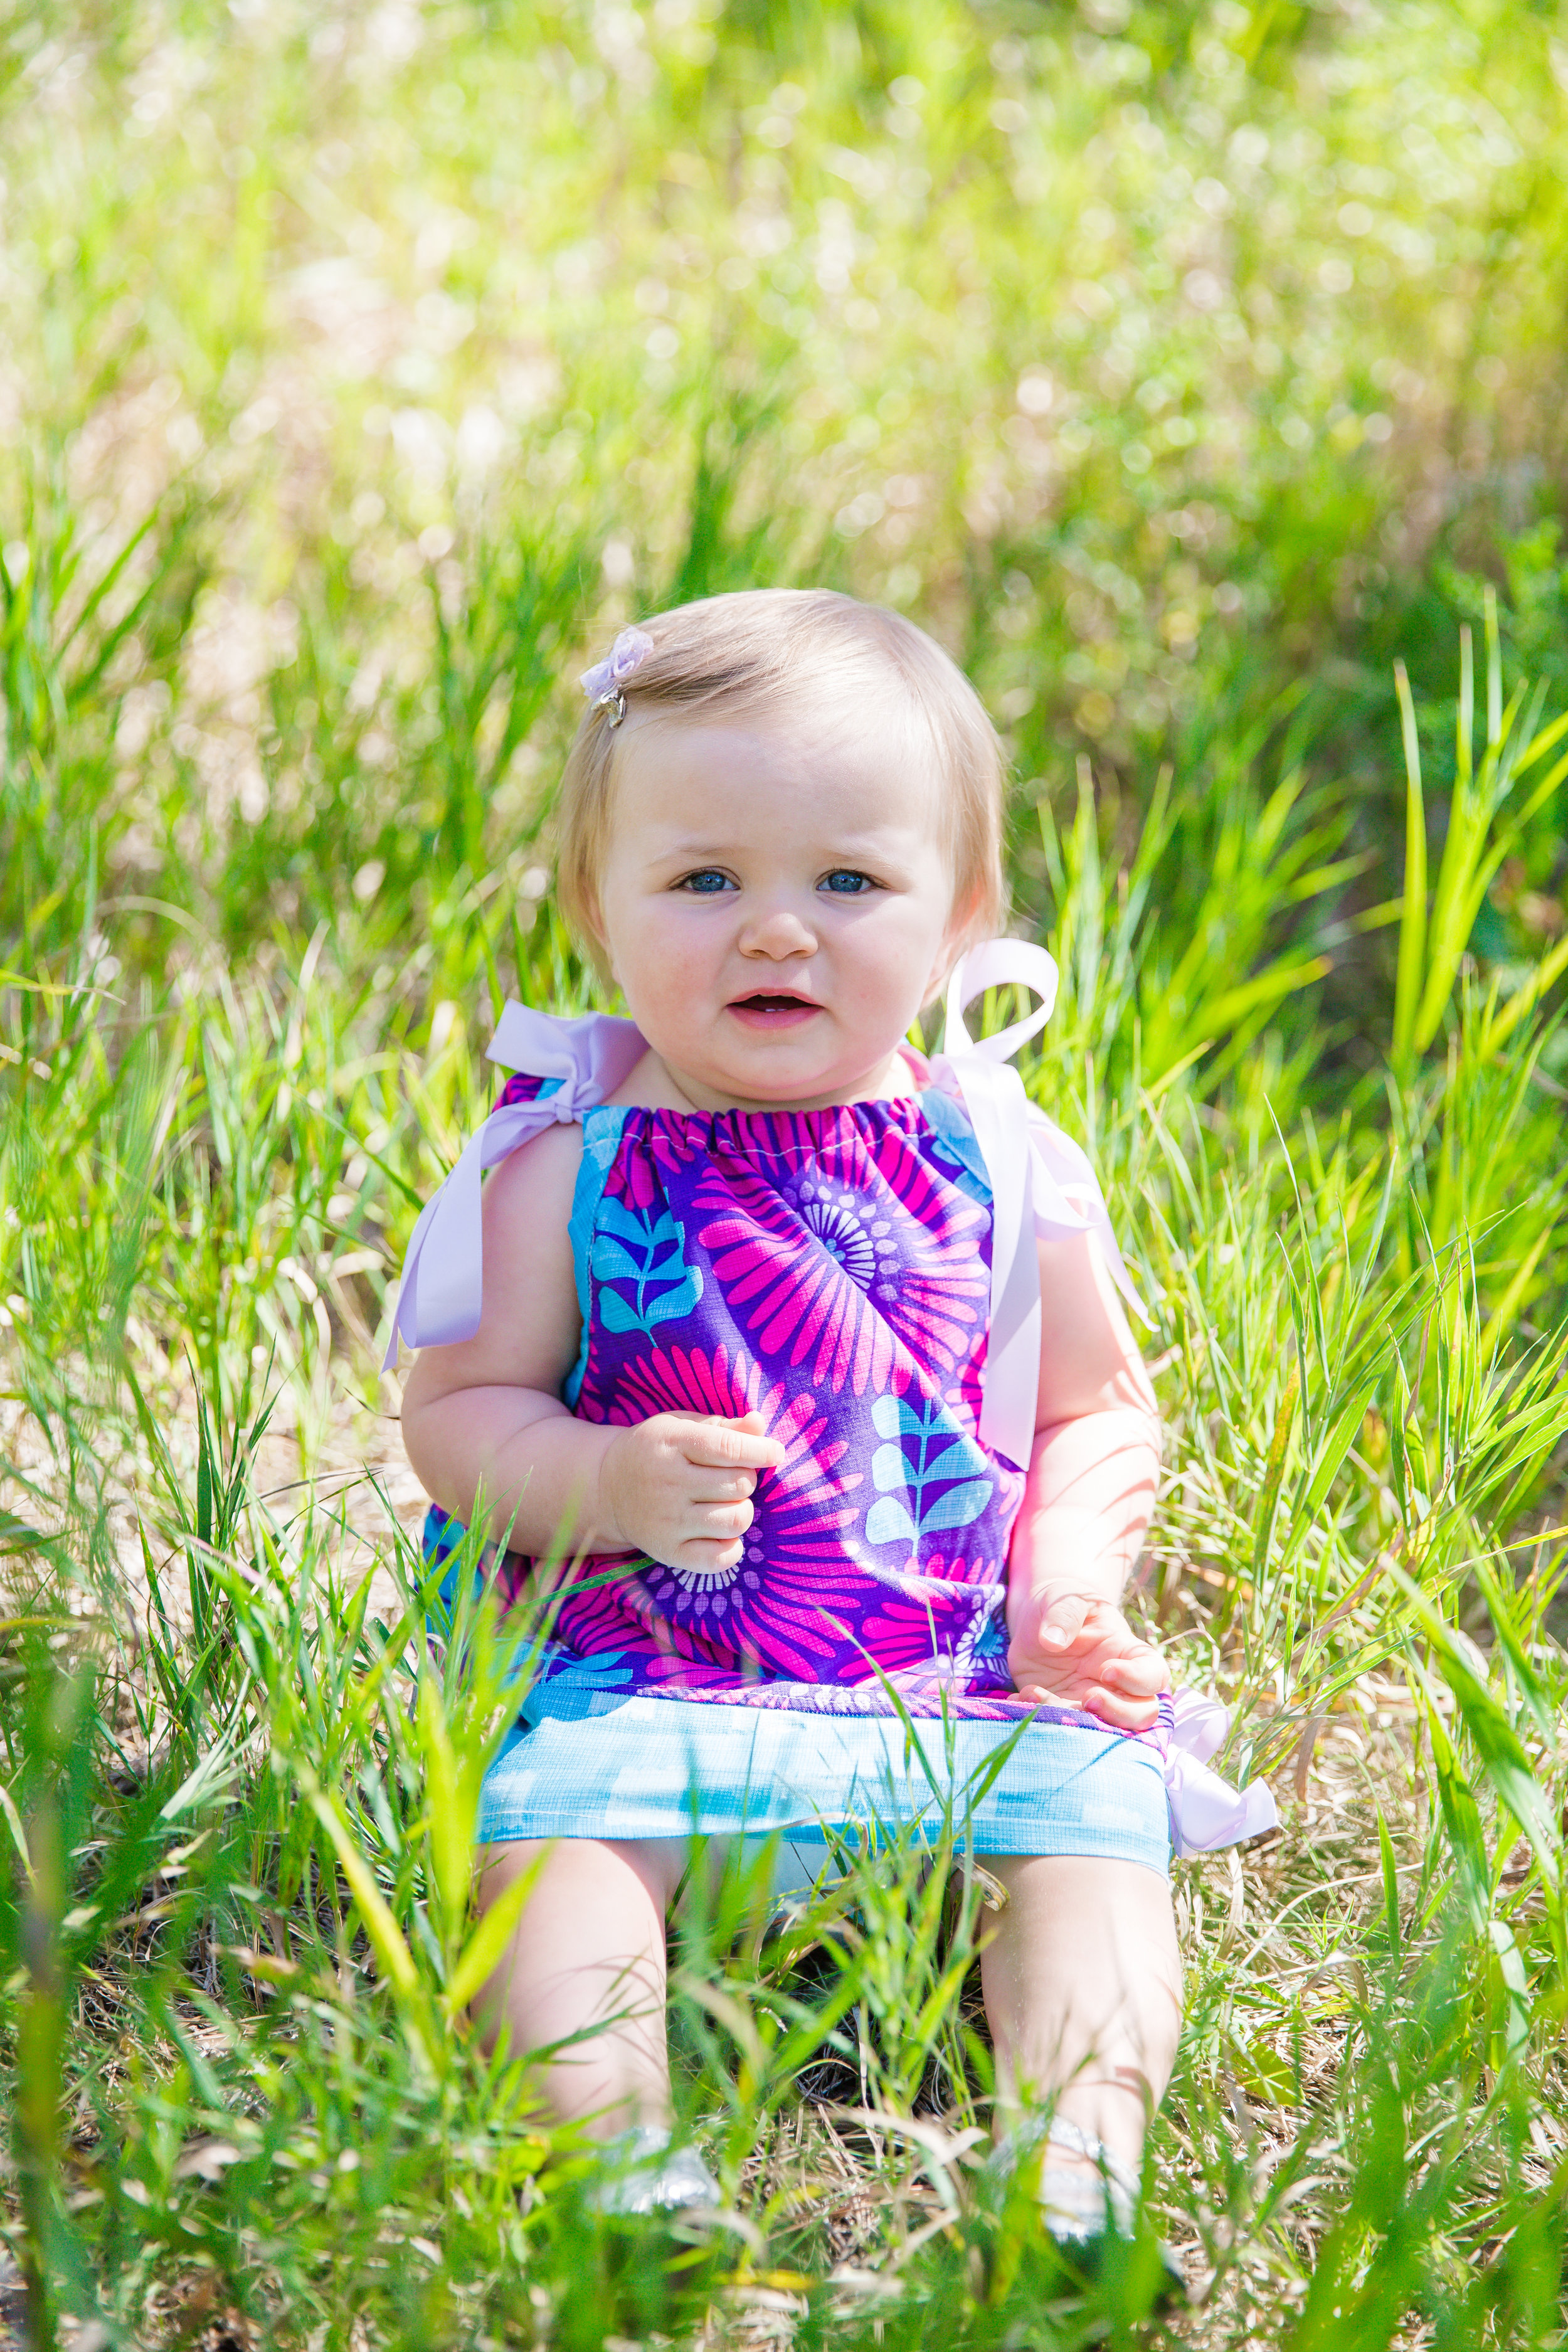 Kinley is ONE! This was my second time photographing this little girl. The first time was during her newborn session which I remember vividly because she was a little sleeping beauty! Her one year session was full of laughter and smiles. She enjoyed her delicious smash cake from  JJ's Cakery  as did mom and I :) Kinley is so full of personality, I can't wait to photograph that adorable smiley girl again!